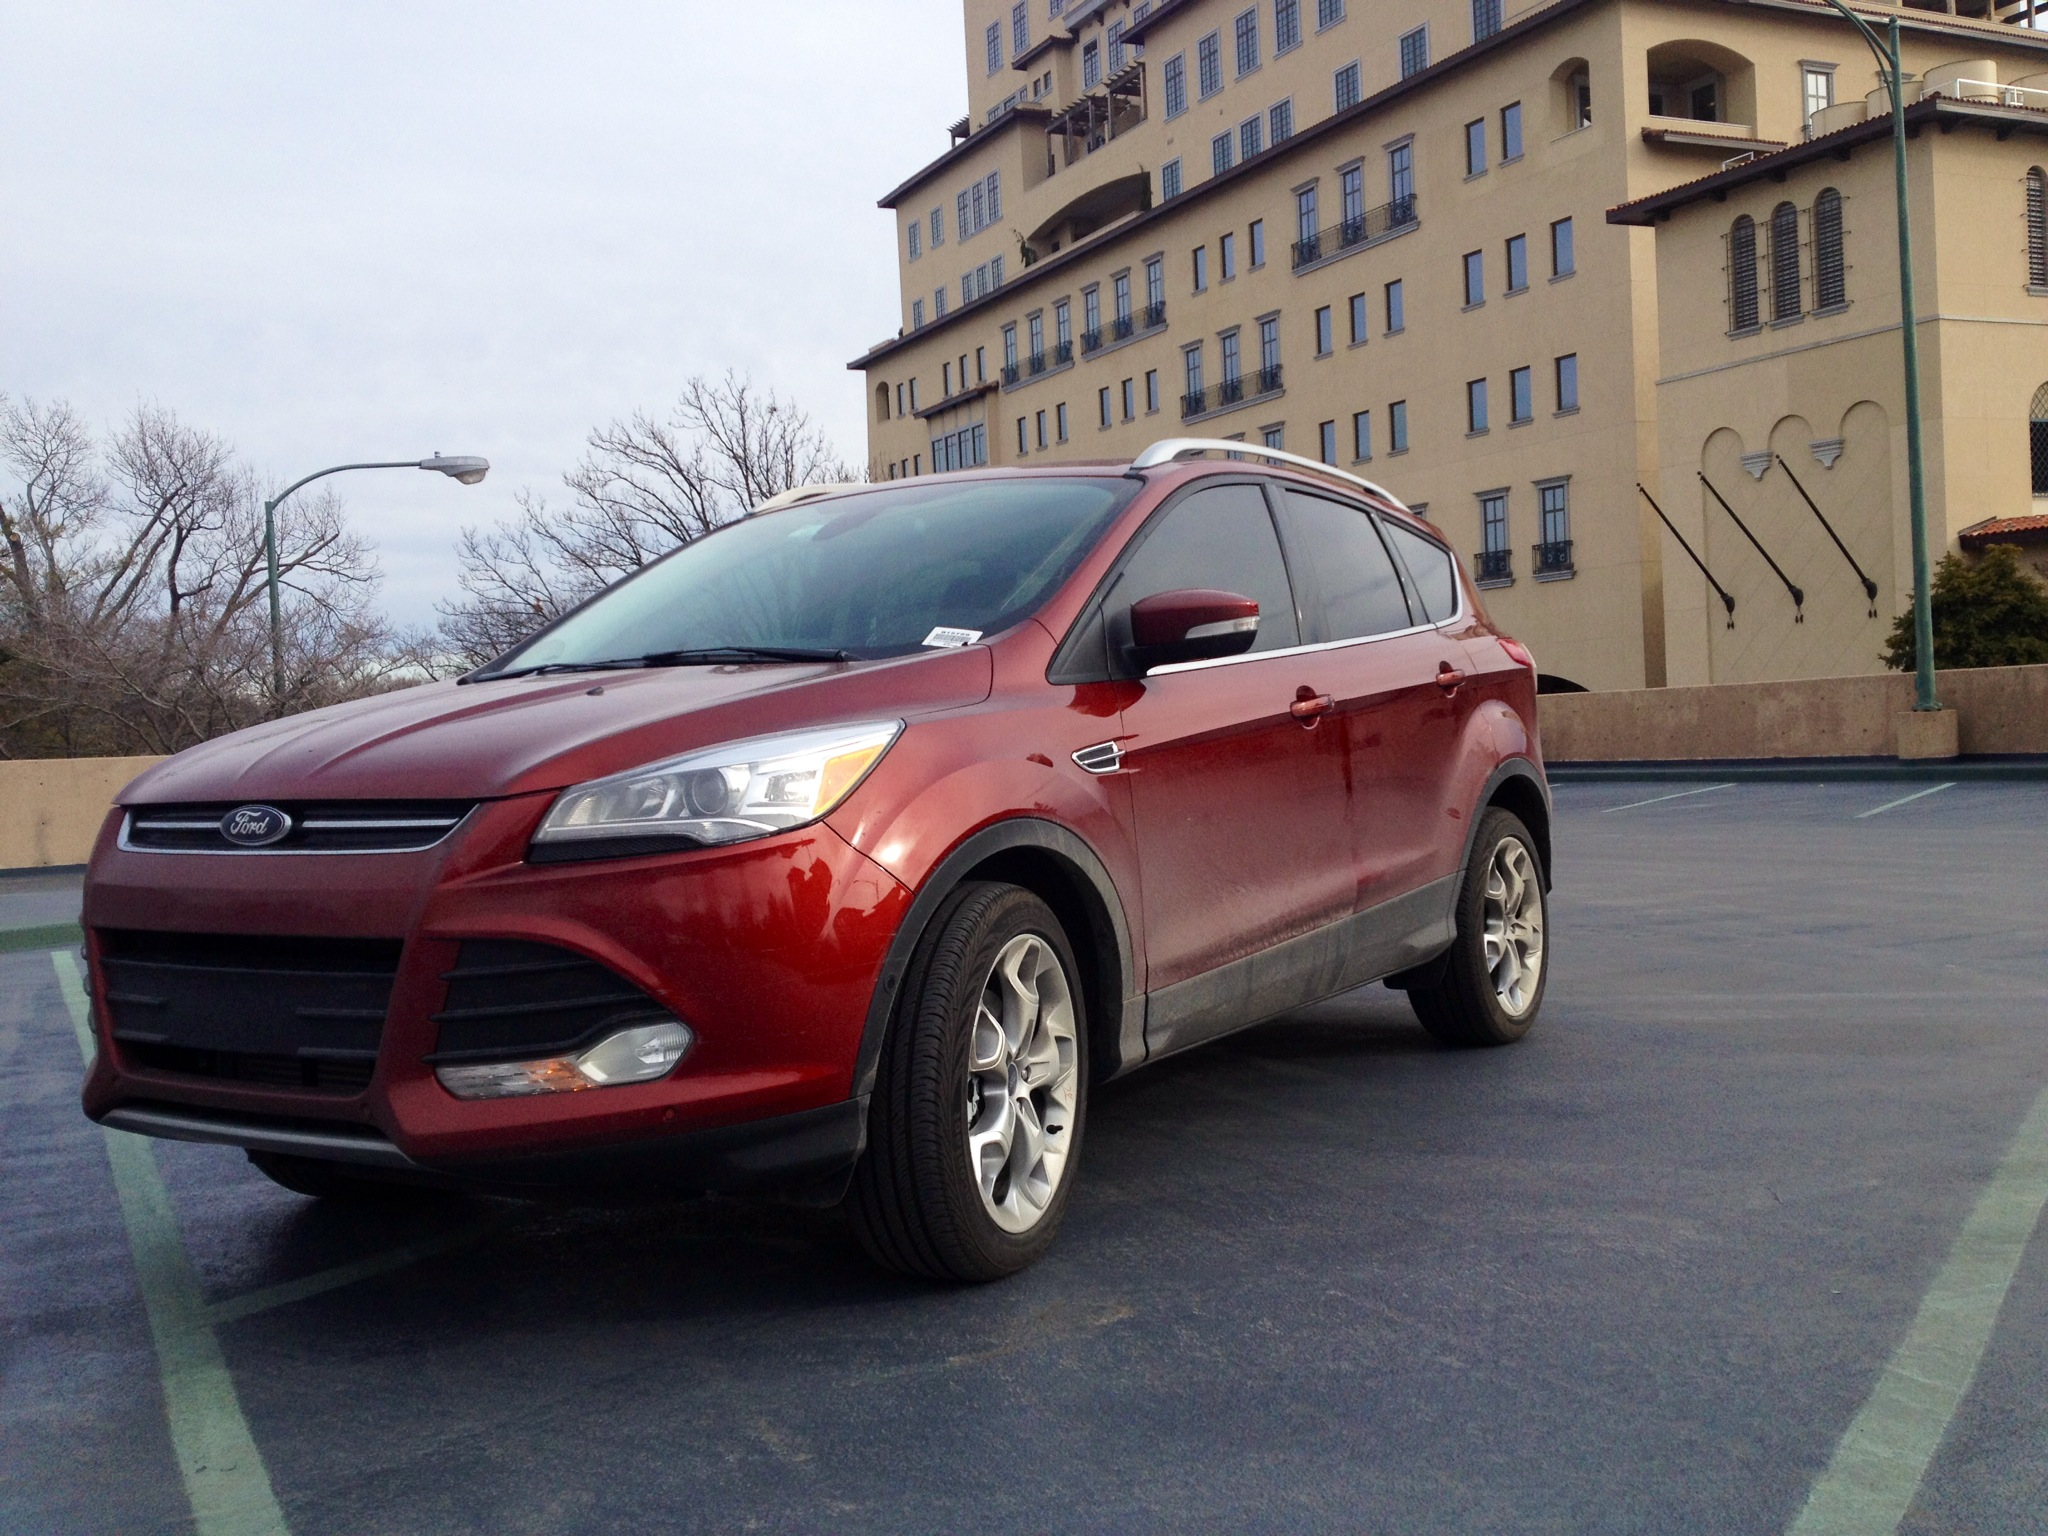 2014 Ford Escape from Bob Hurley Ford & 5 Ways to Find a Down Payment For a Car Loan - Julie Chin markmcfarlin.com